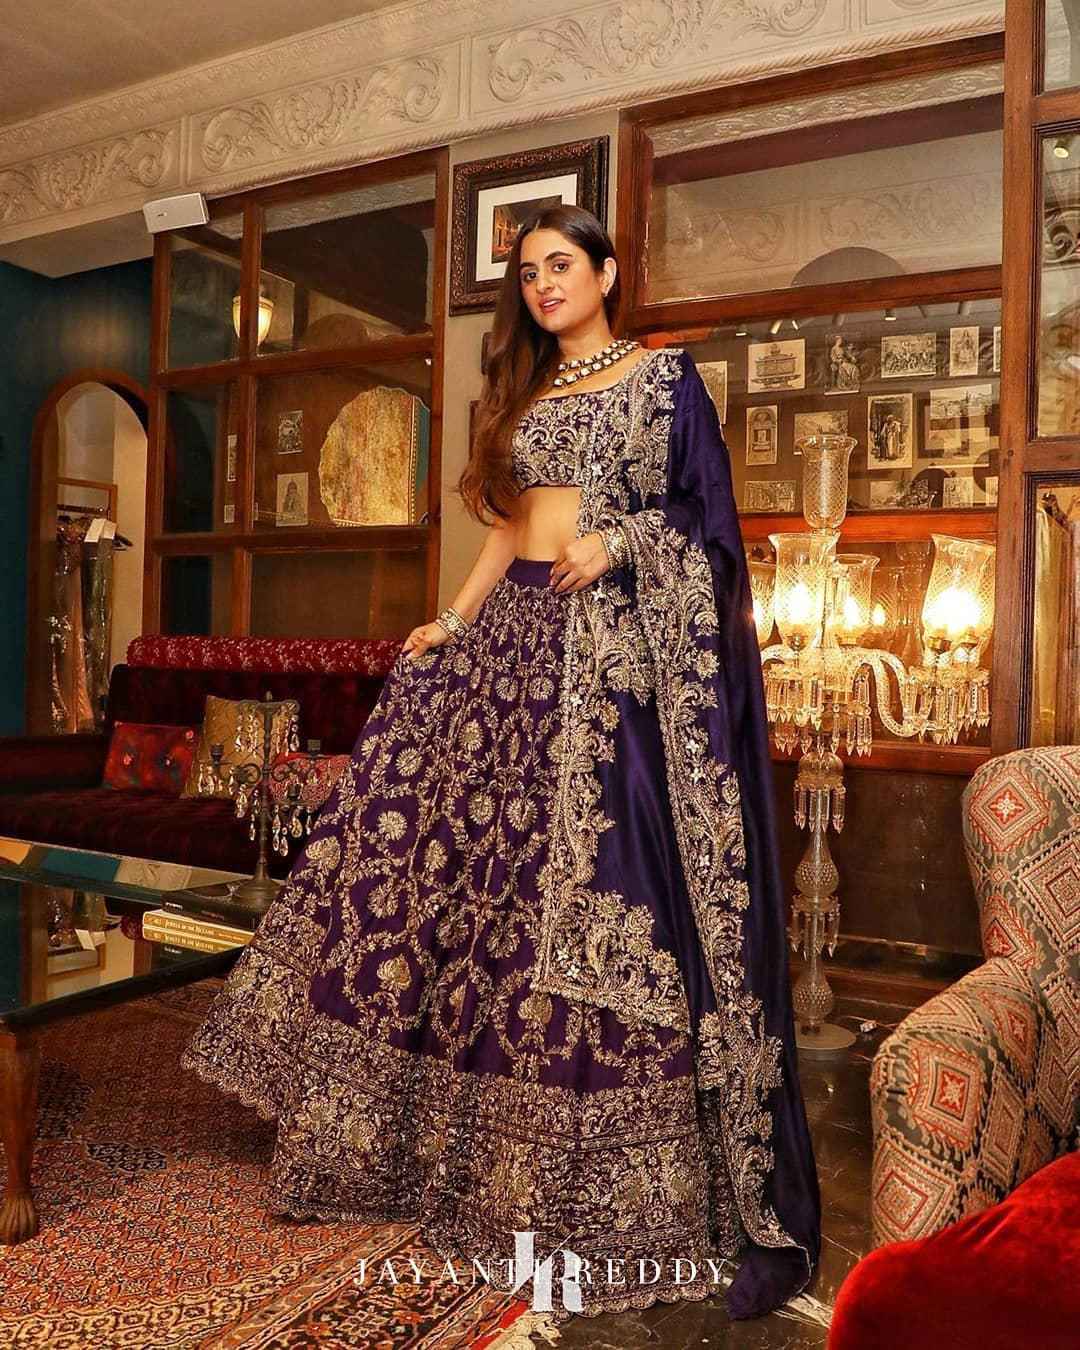 Traditional weaves for contemporary storytelling portrayed by Shereen love bug in Jayanti Reddy royal purple embroidered lehenga set. 2021-01-19